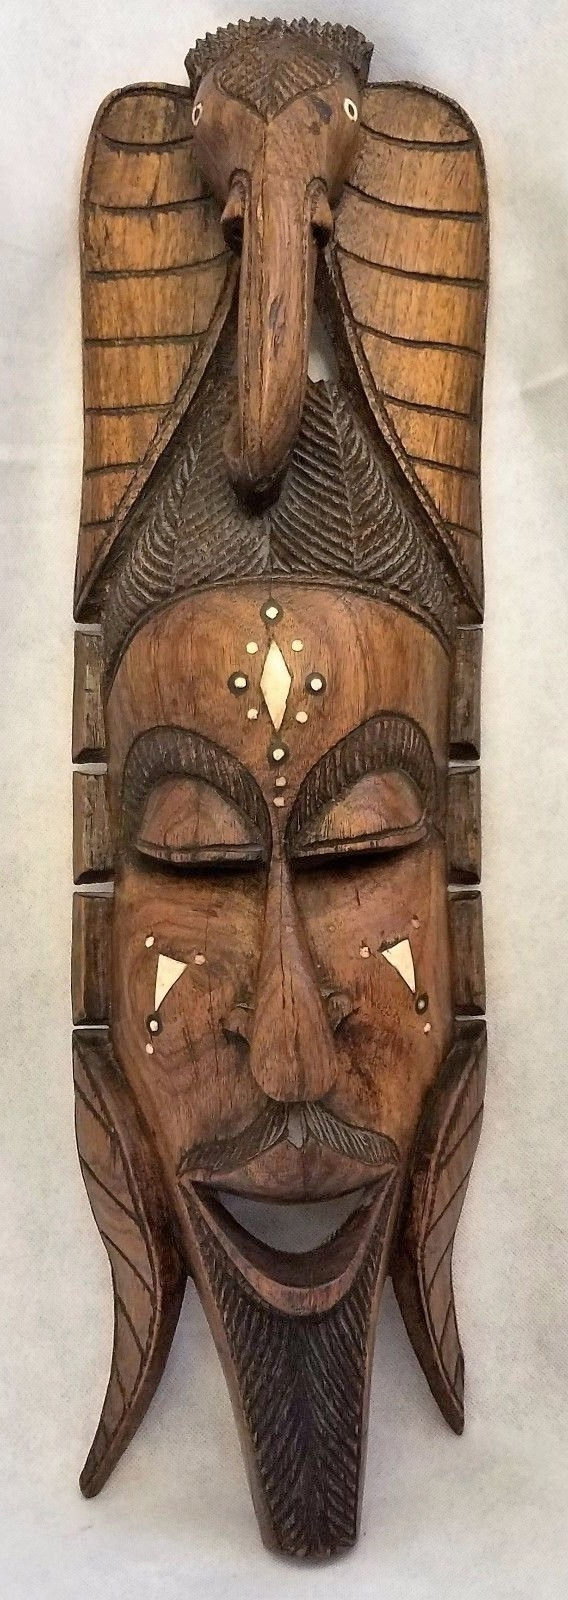 Preferred Wooden Tribal Mask Wall Art Inside Wooden Tribal Mask Wall Art (View 7 of 15)